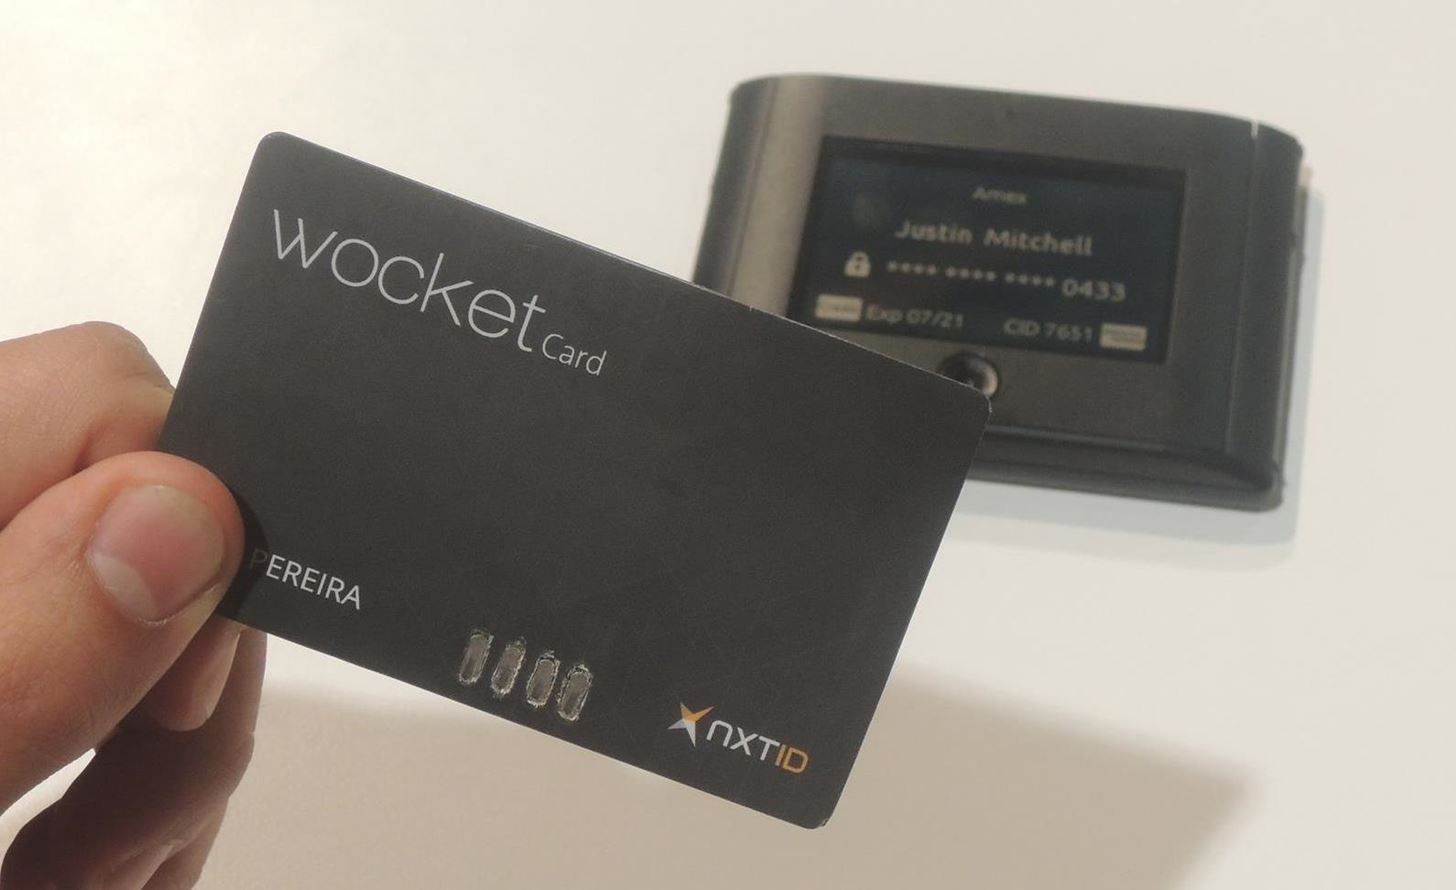 CES 2015: Wocket Digitizes All the Cards in Your Wallet into One Single, Secure Card